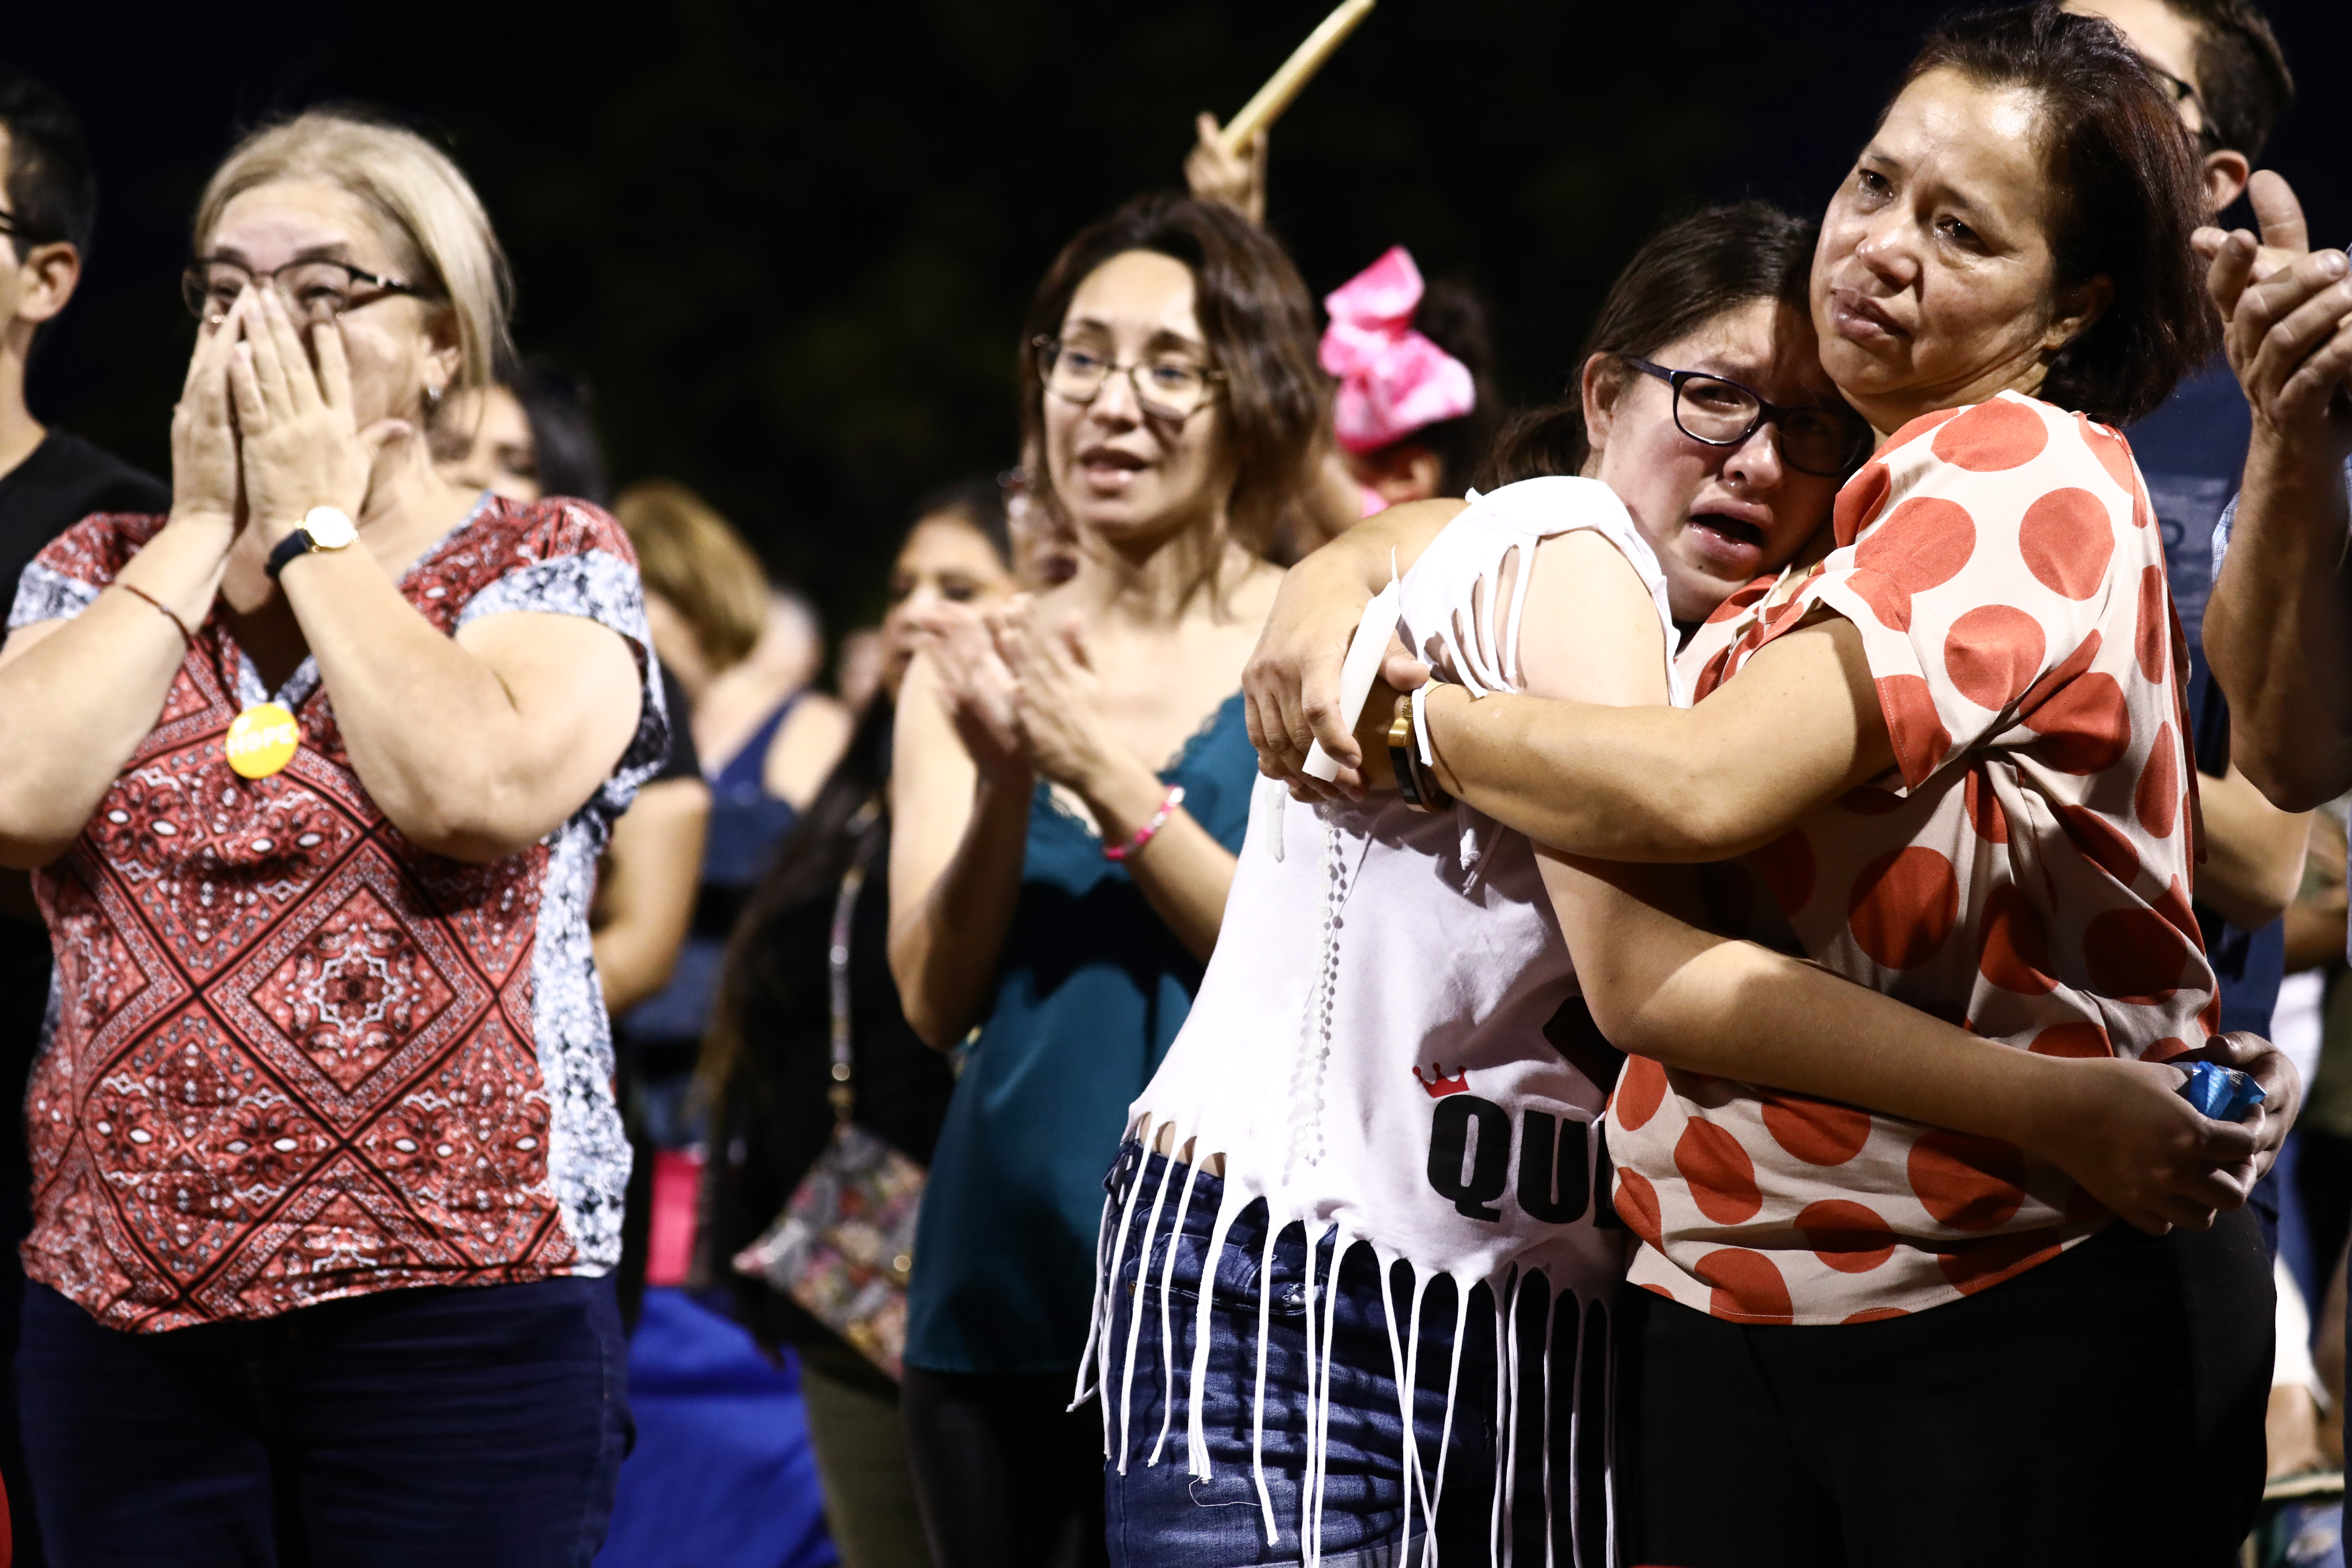 People react and embrace each other during an interfaith vigil for victims of a mass shooting which left at least 20 people dead, on August 4, 2019 in El Paso, Texas (Mario Tama/Getty Images)